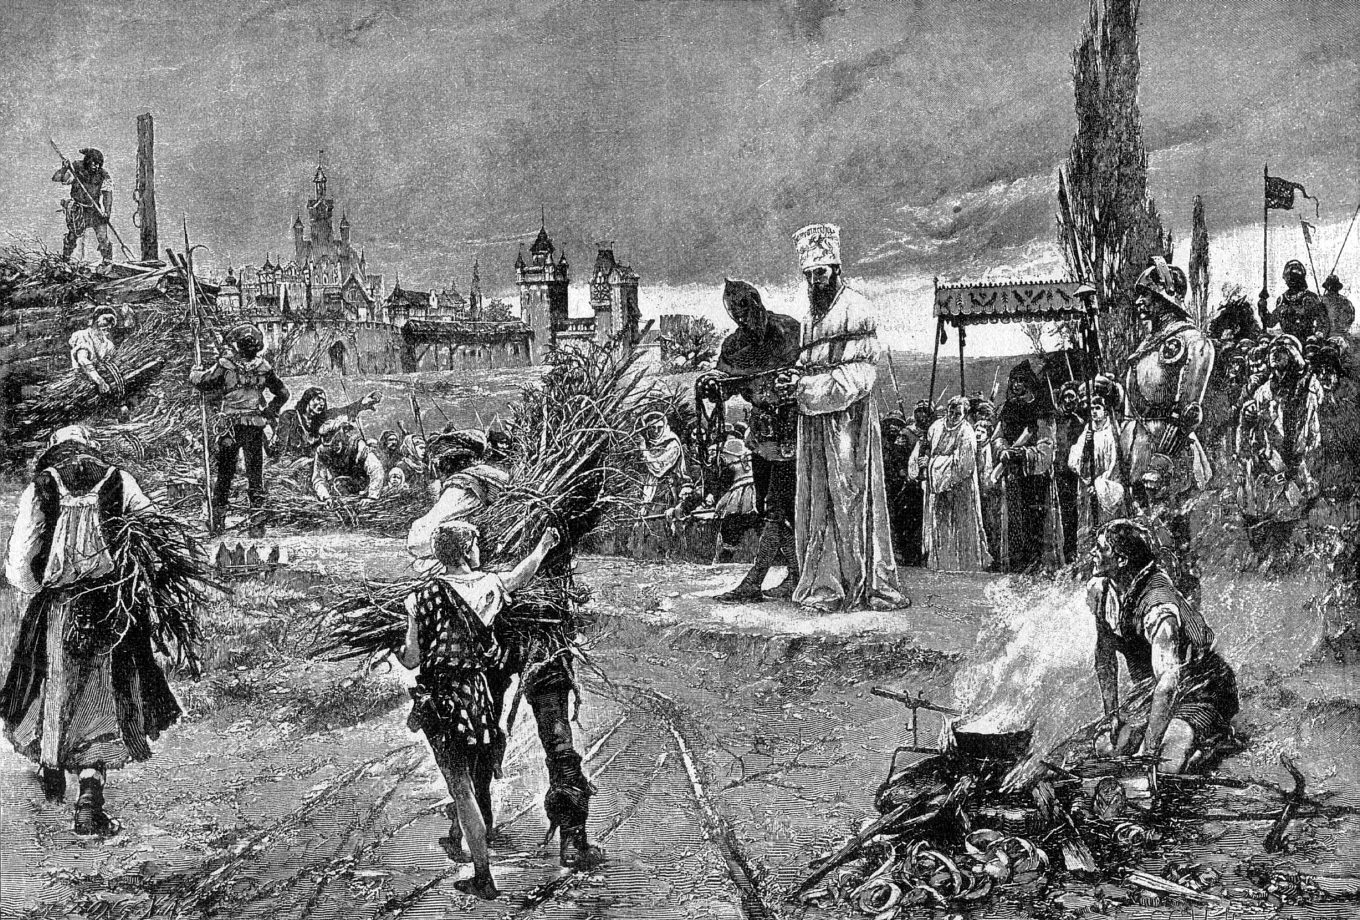 Executioners prepare to burn dissident Czech Catholic priest Jan Hus at the stake in 1415 AD.